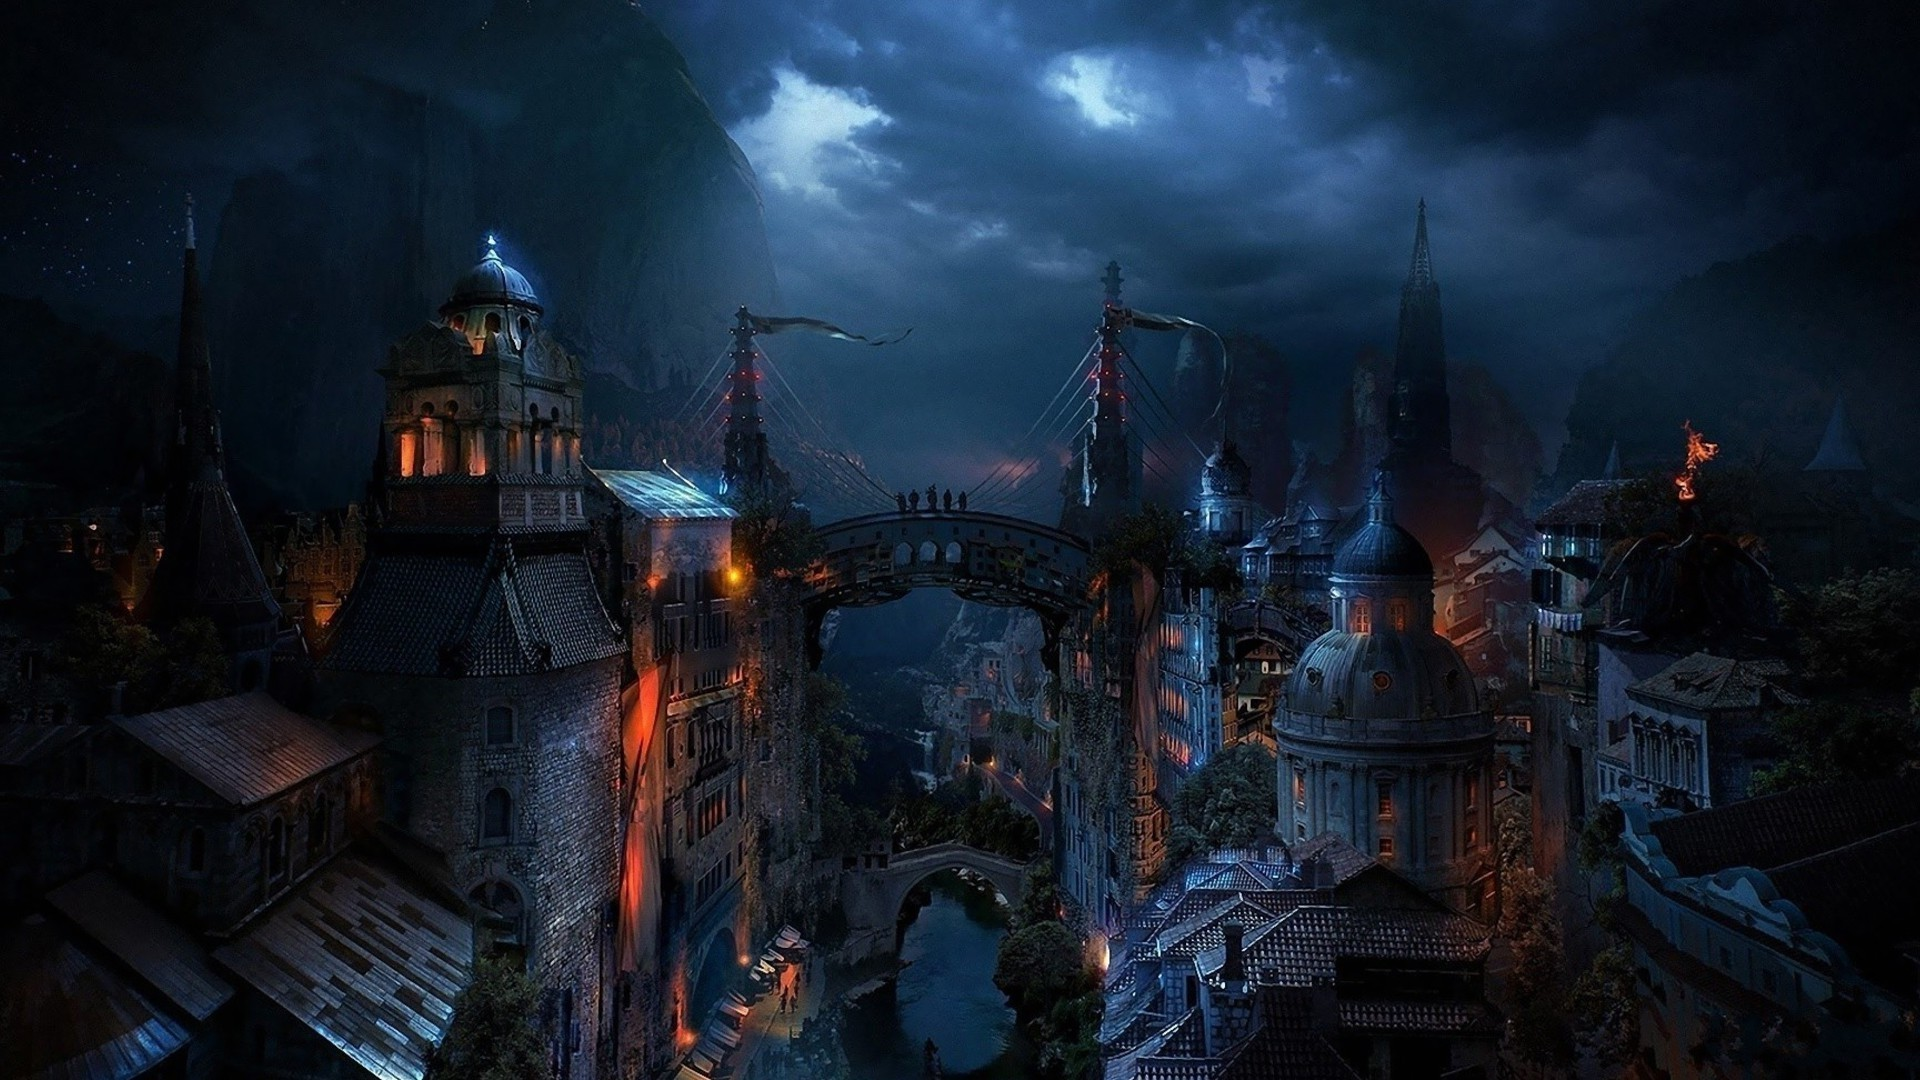 Fantasy City Wallpaper Hd: Dark-medieval-city-fantasy-hd-wallpaper-1920x1080